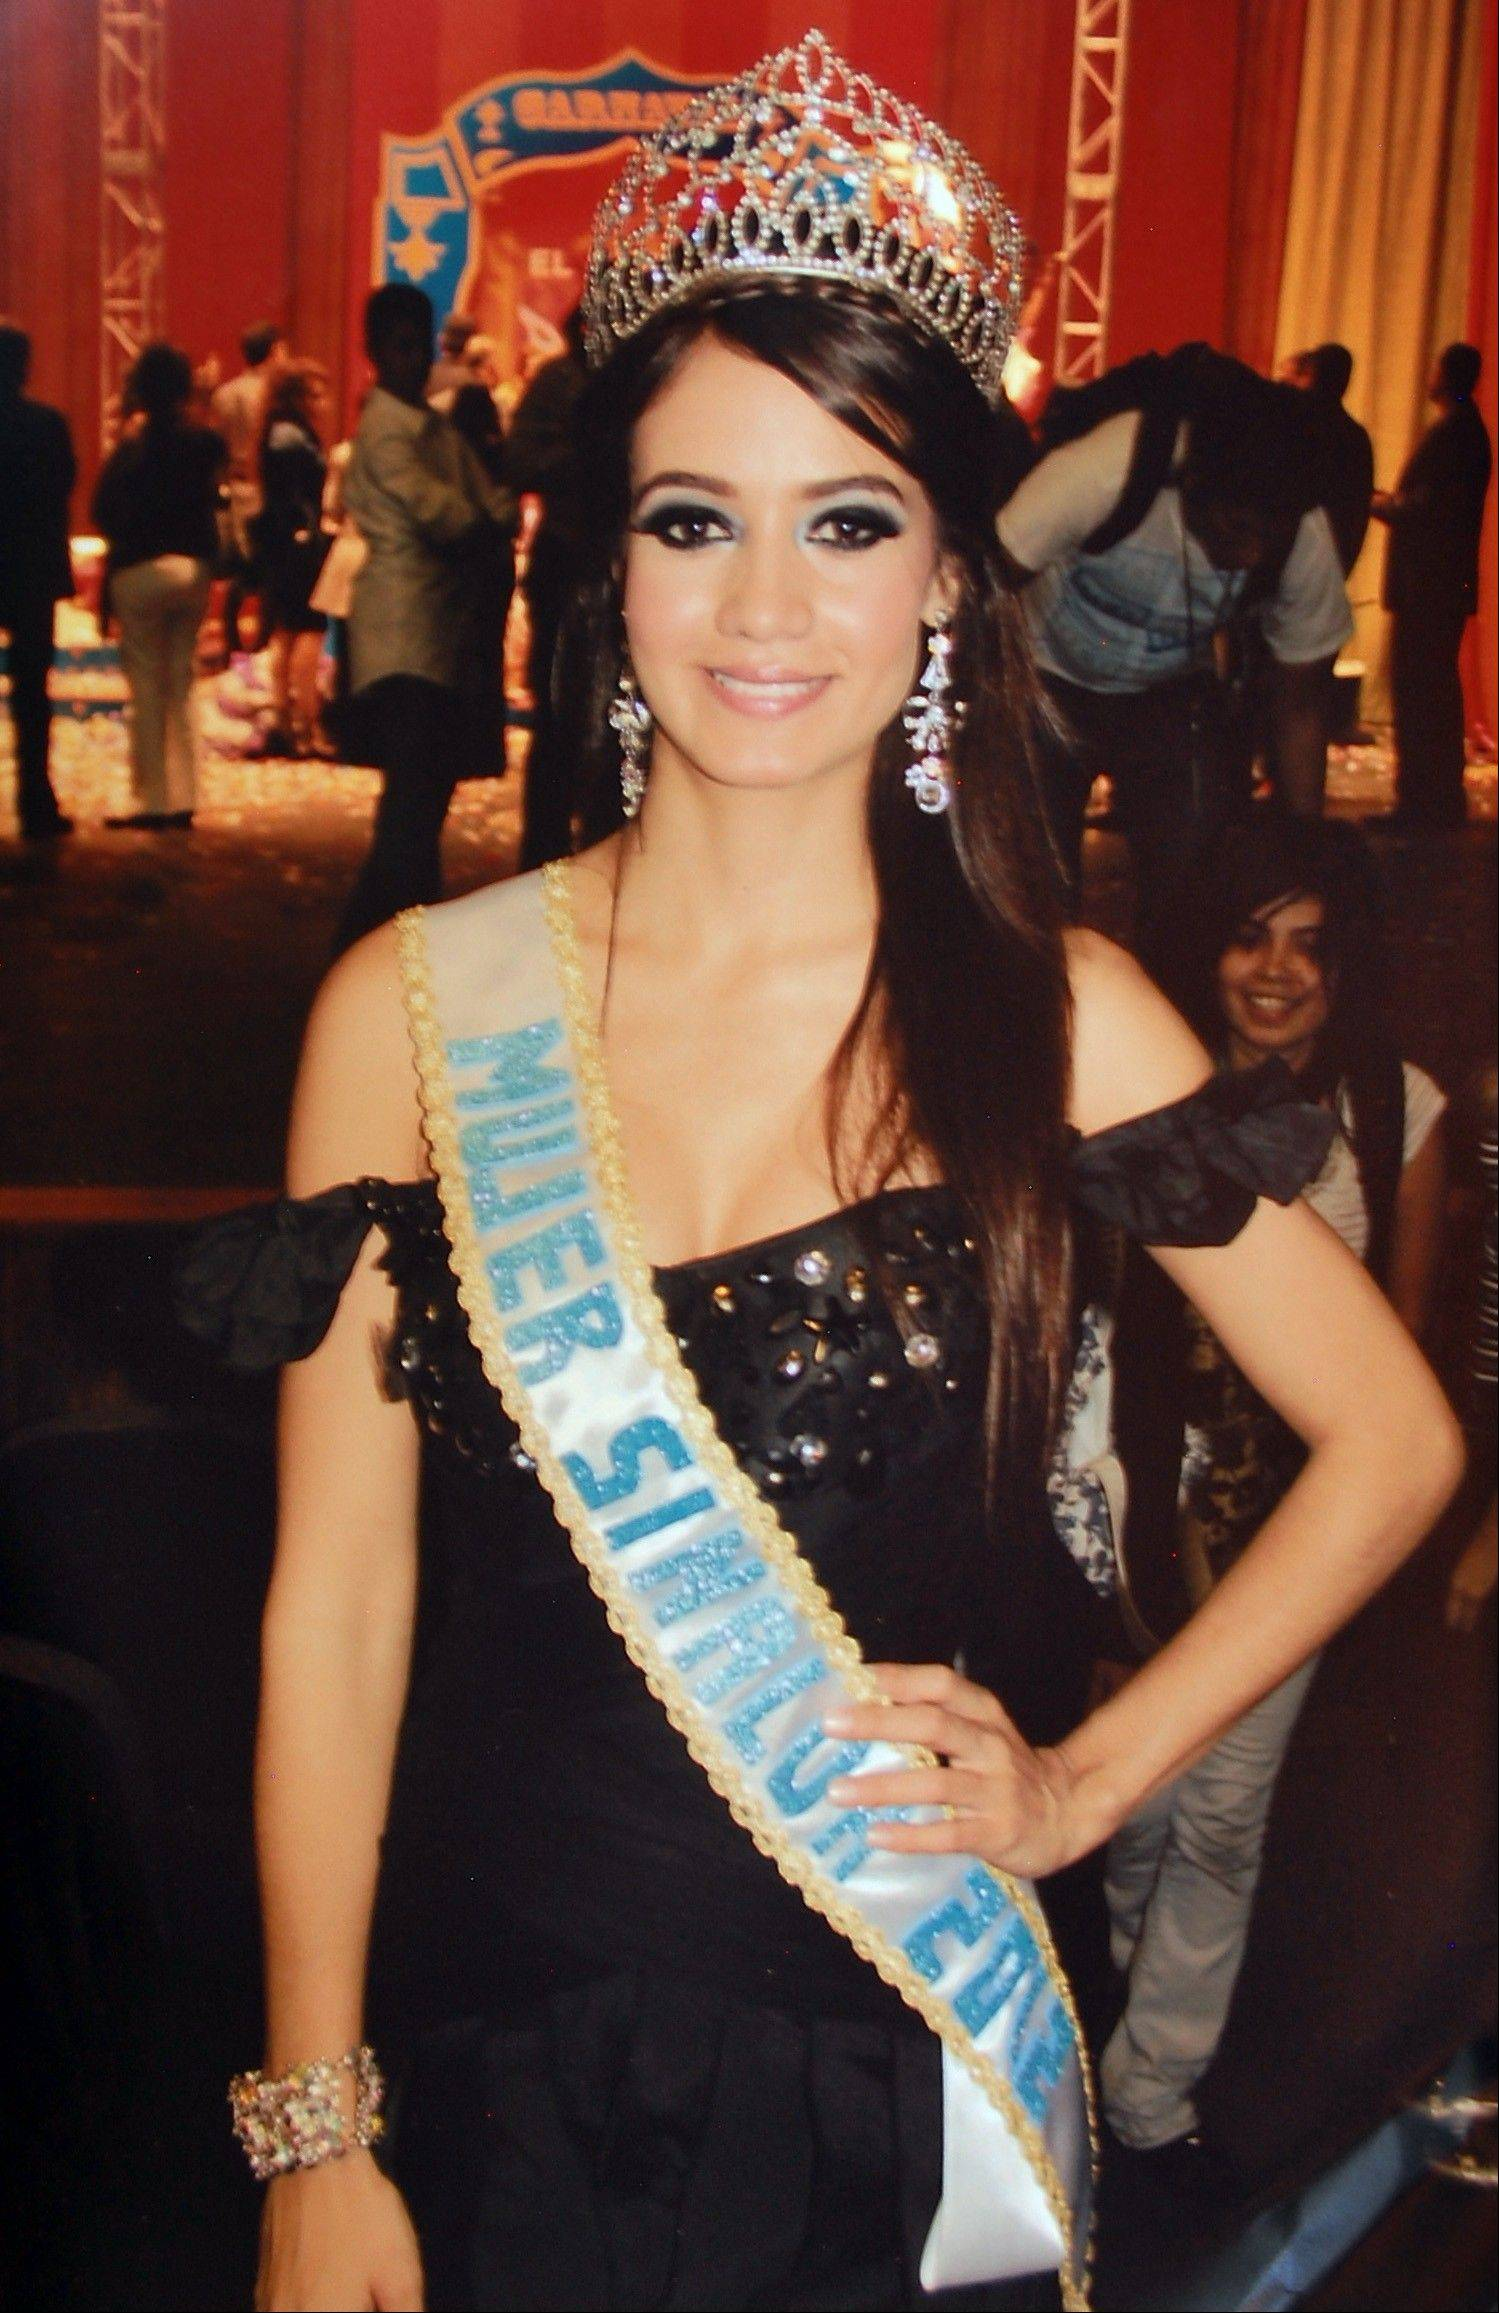 Associated Press/February 2012 Maria Susana Flores Gamez, after being crowned Sinaloa Woman 2012 in Culiacan, Mexico.